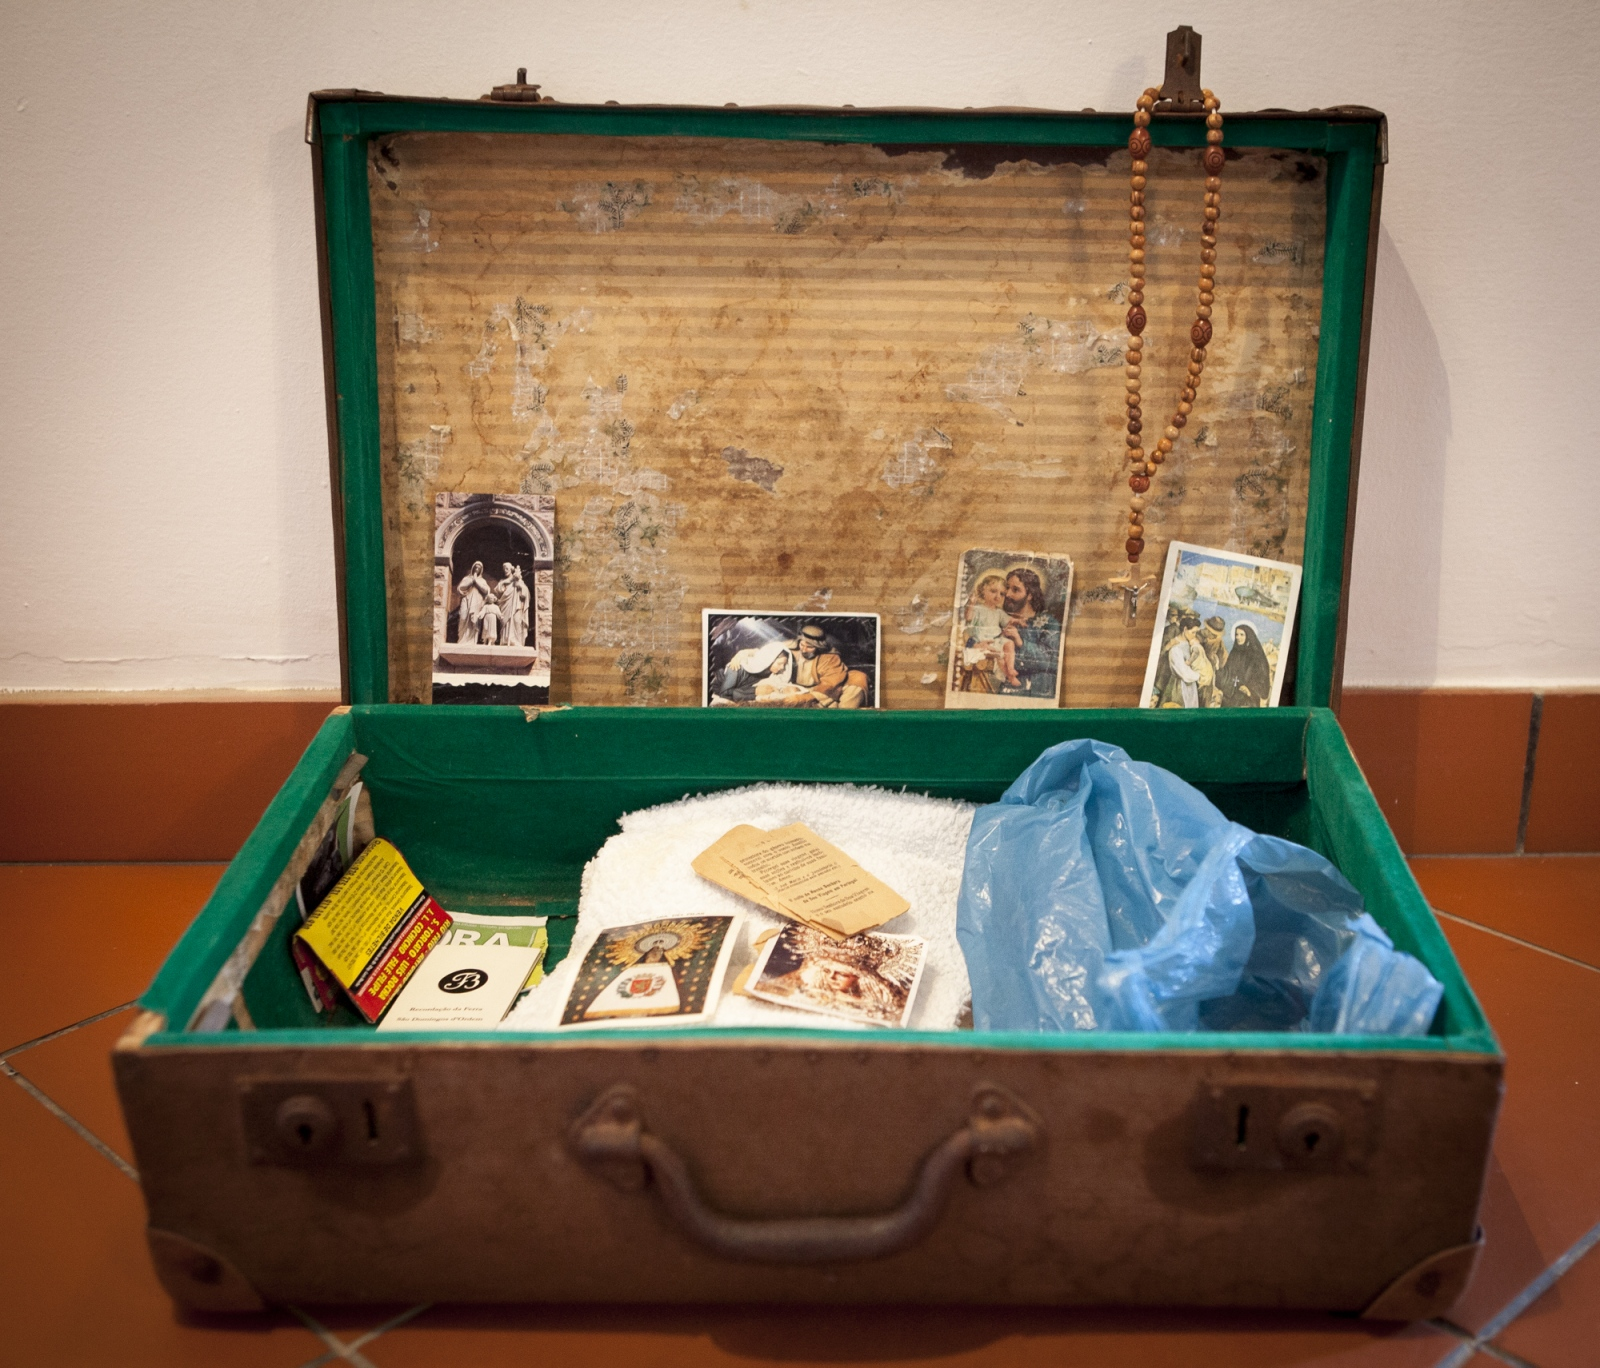 A suitcase belonging to one of the forcados. Forcados are extremely  religious.